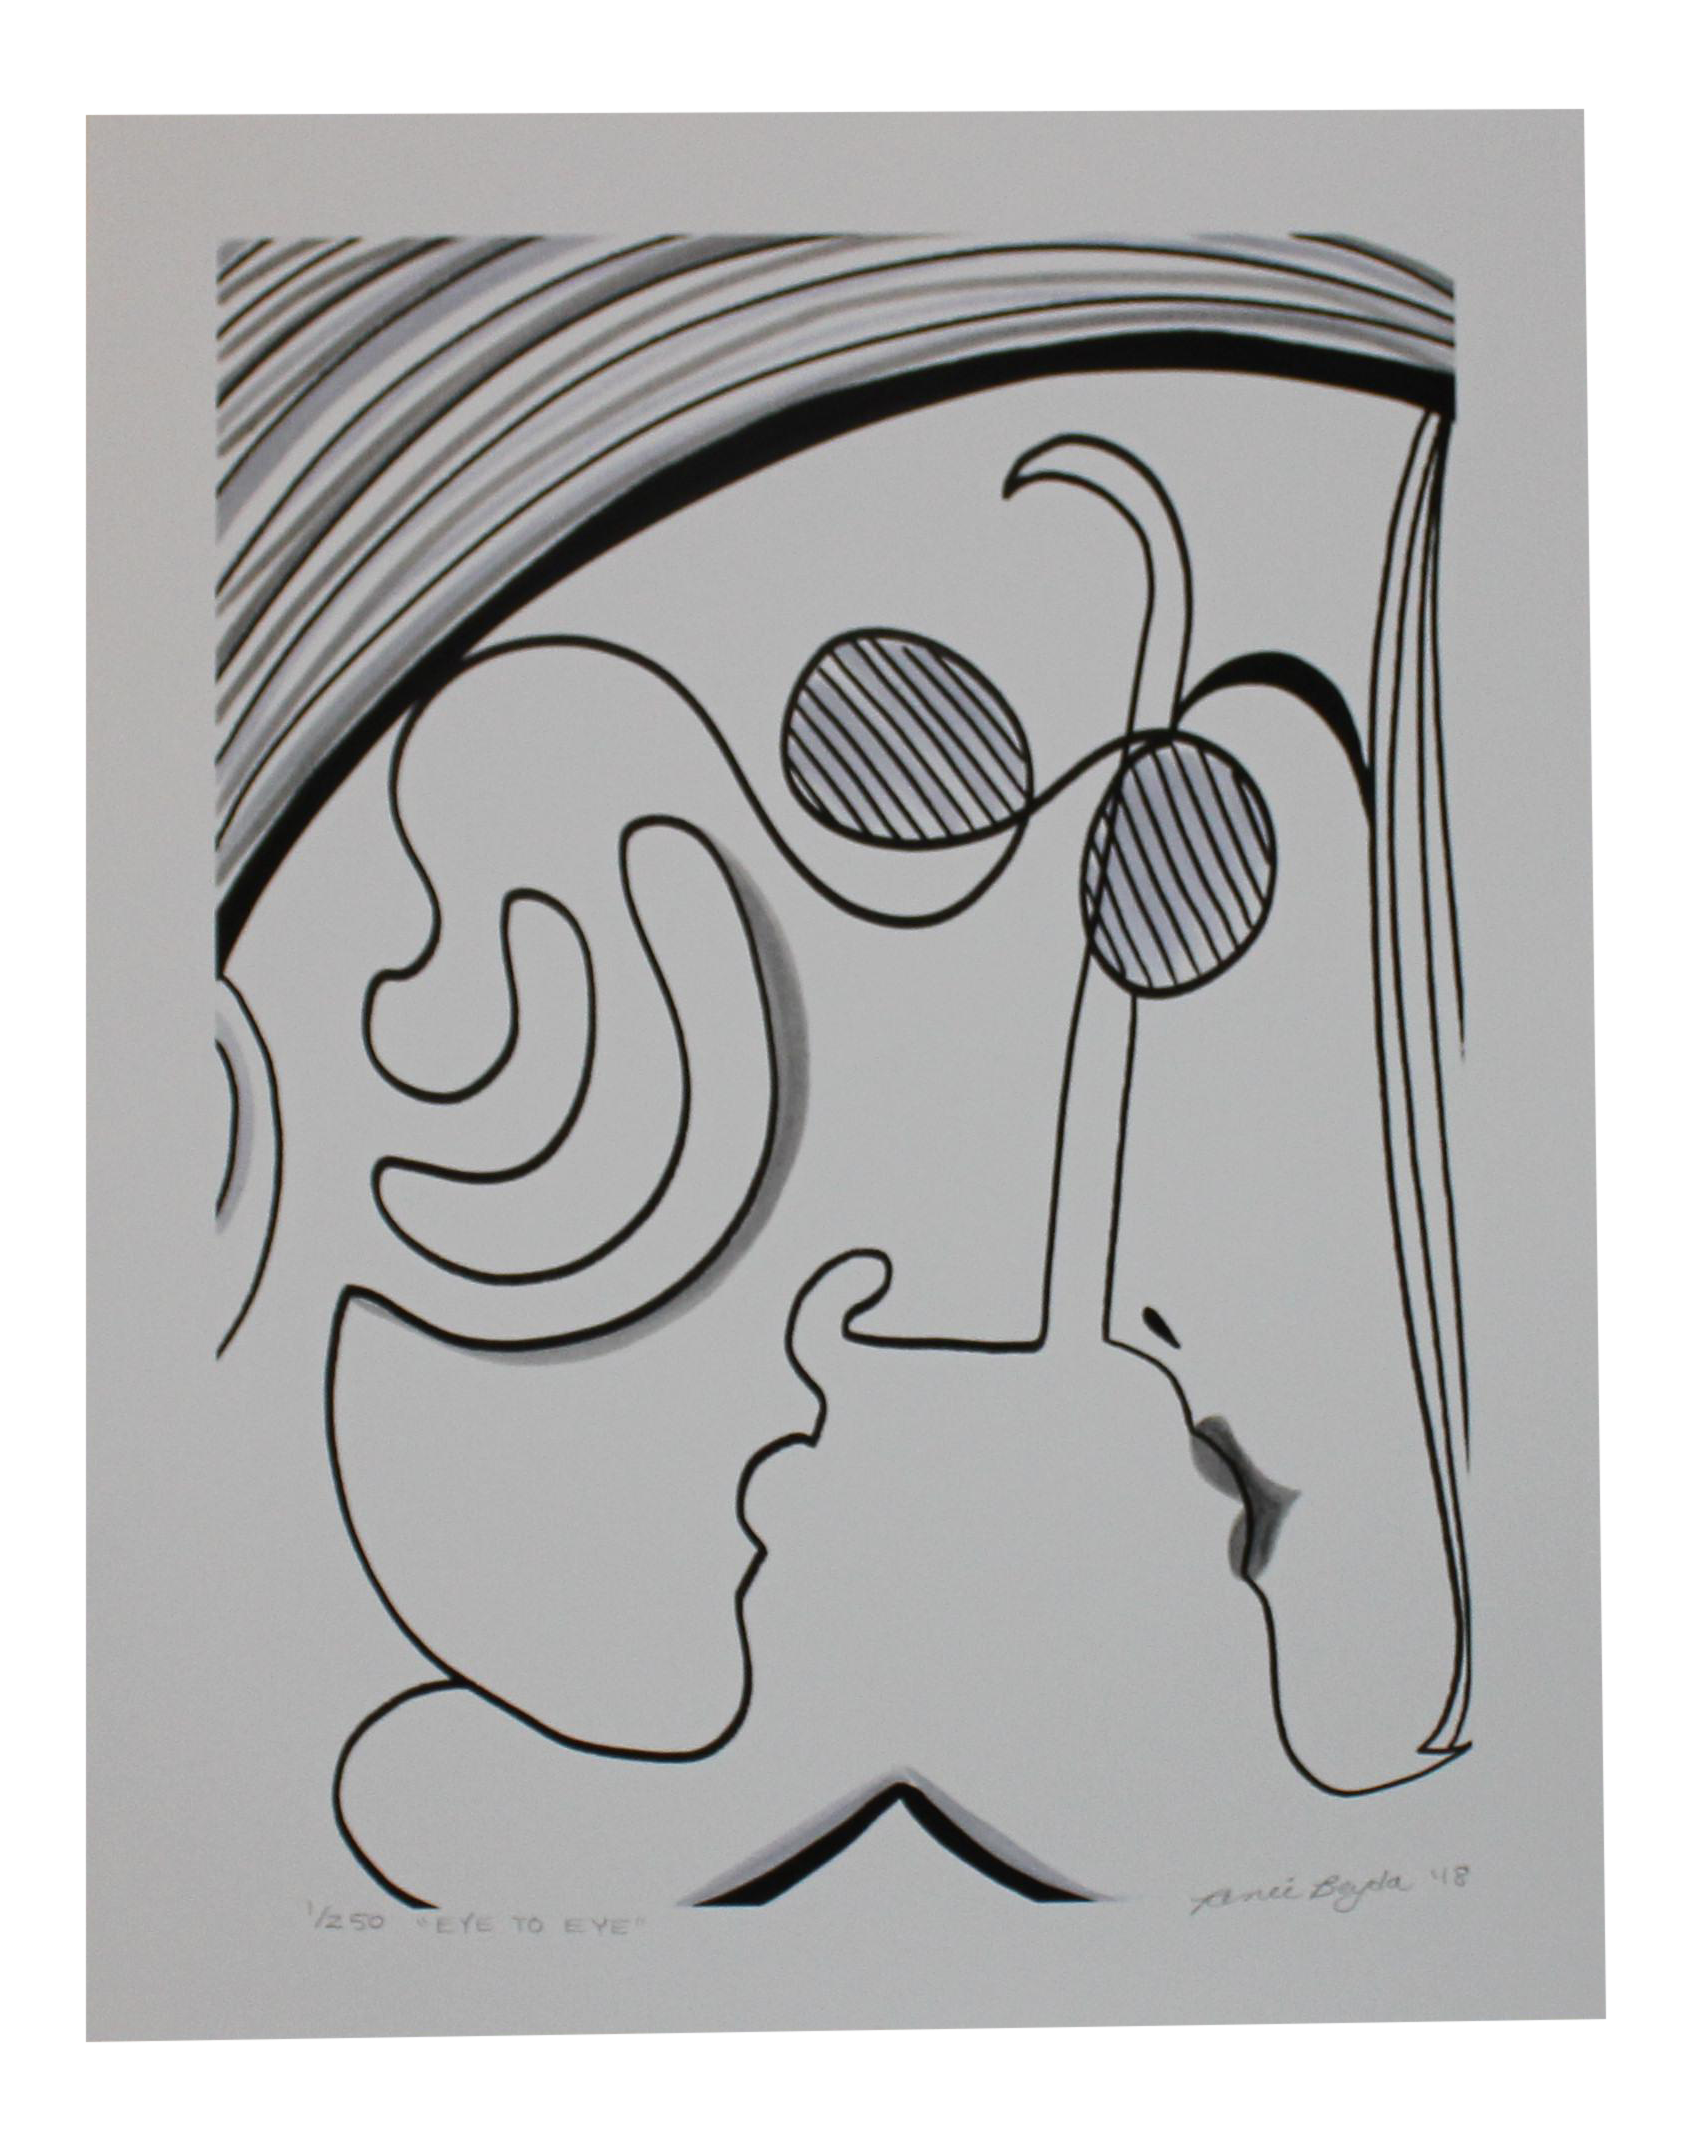 Eve drawing abstract. Black and white one